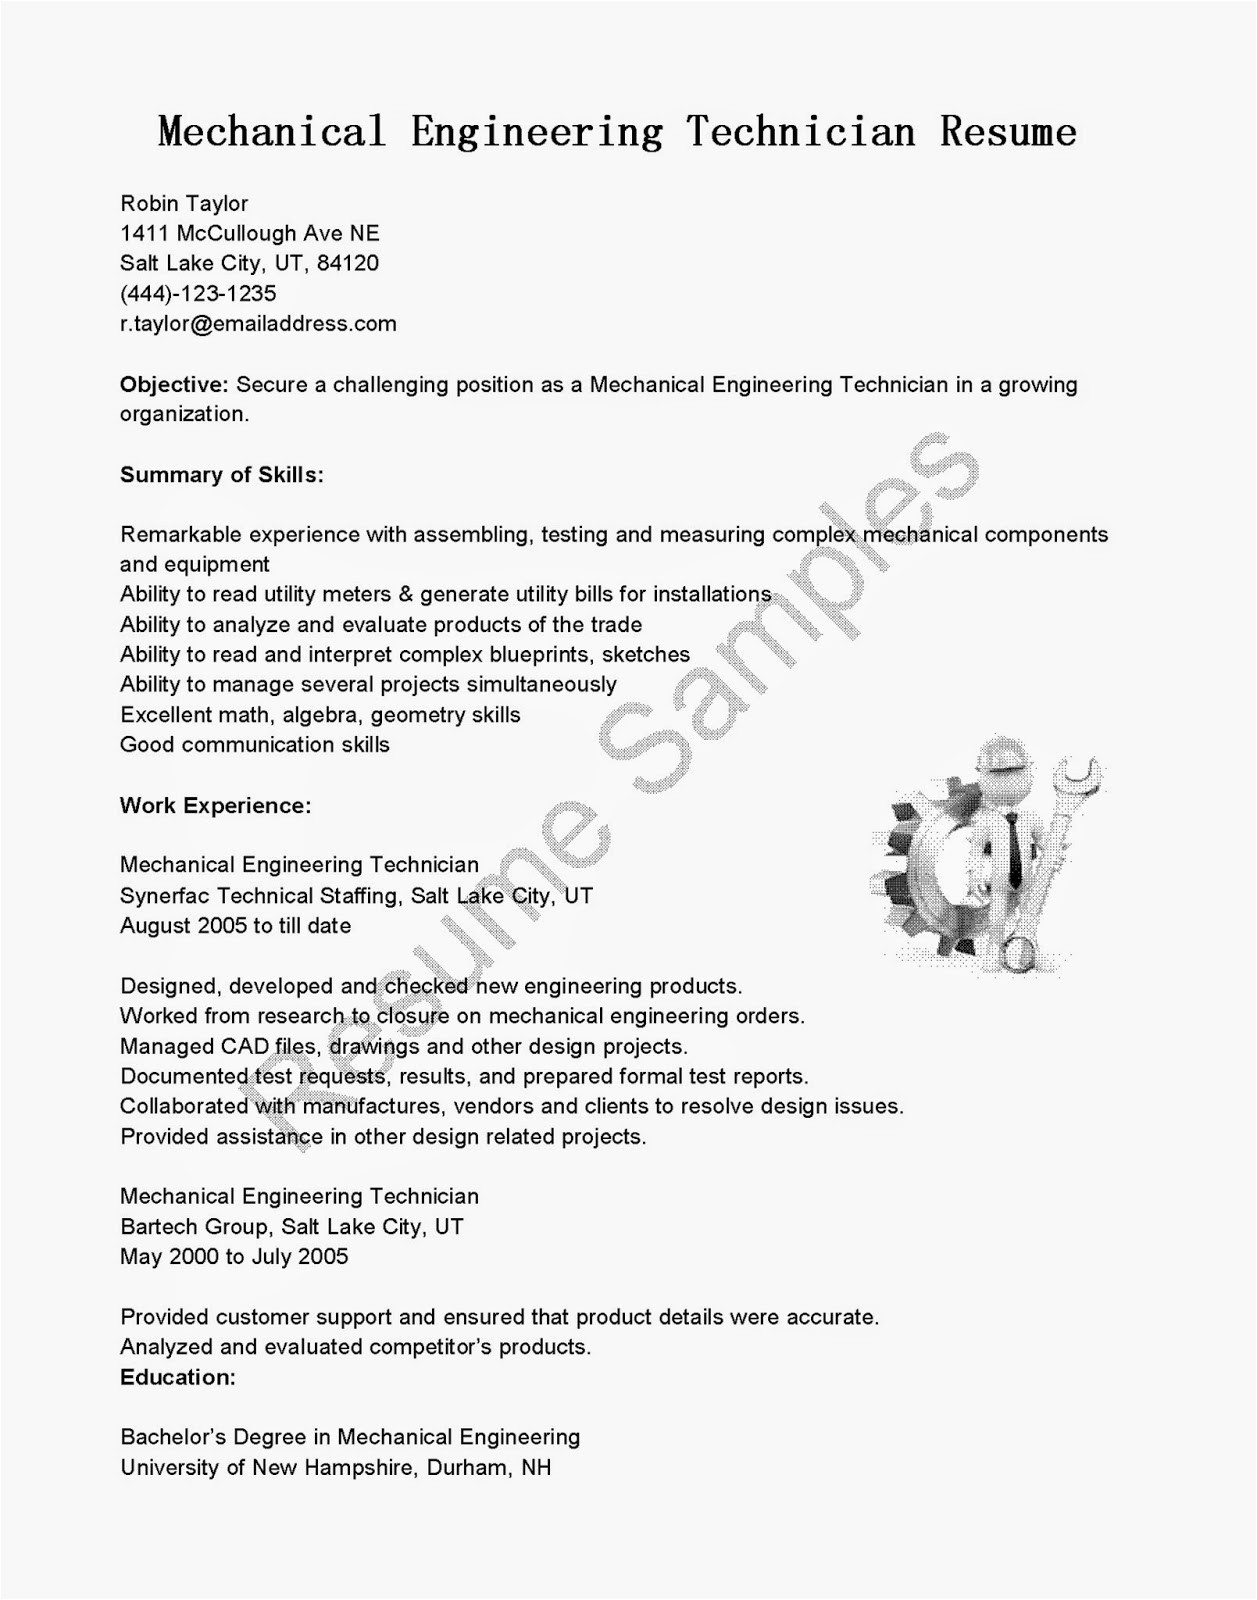 Mechanical Engineering Technologist Resume Sample Resume Samples Mechanical Engineering Technician Resume